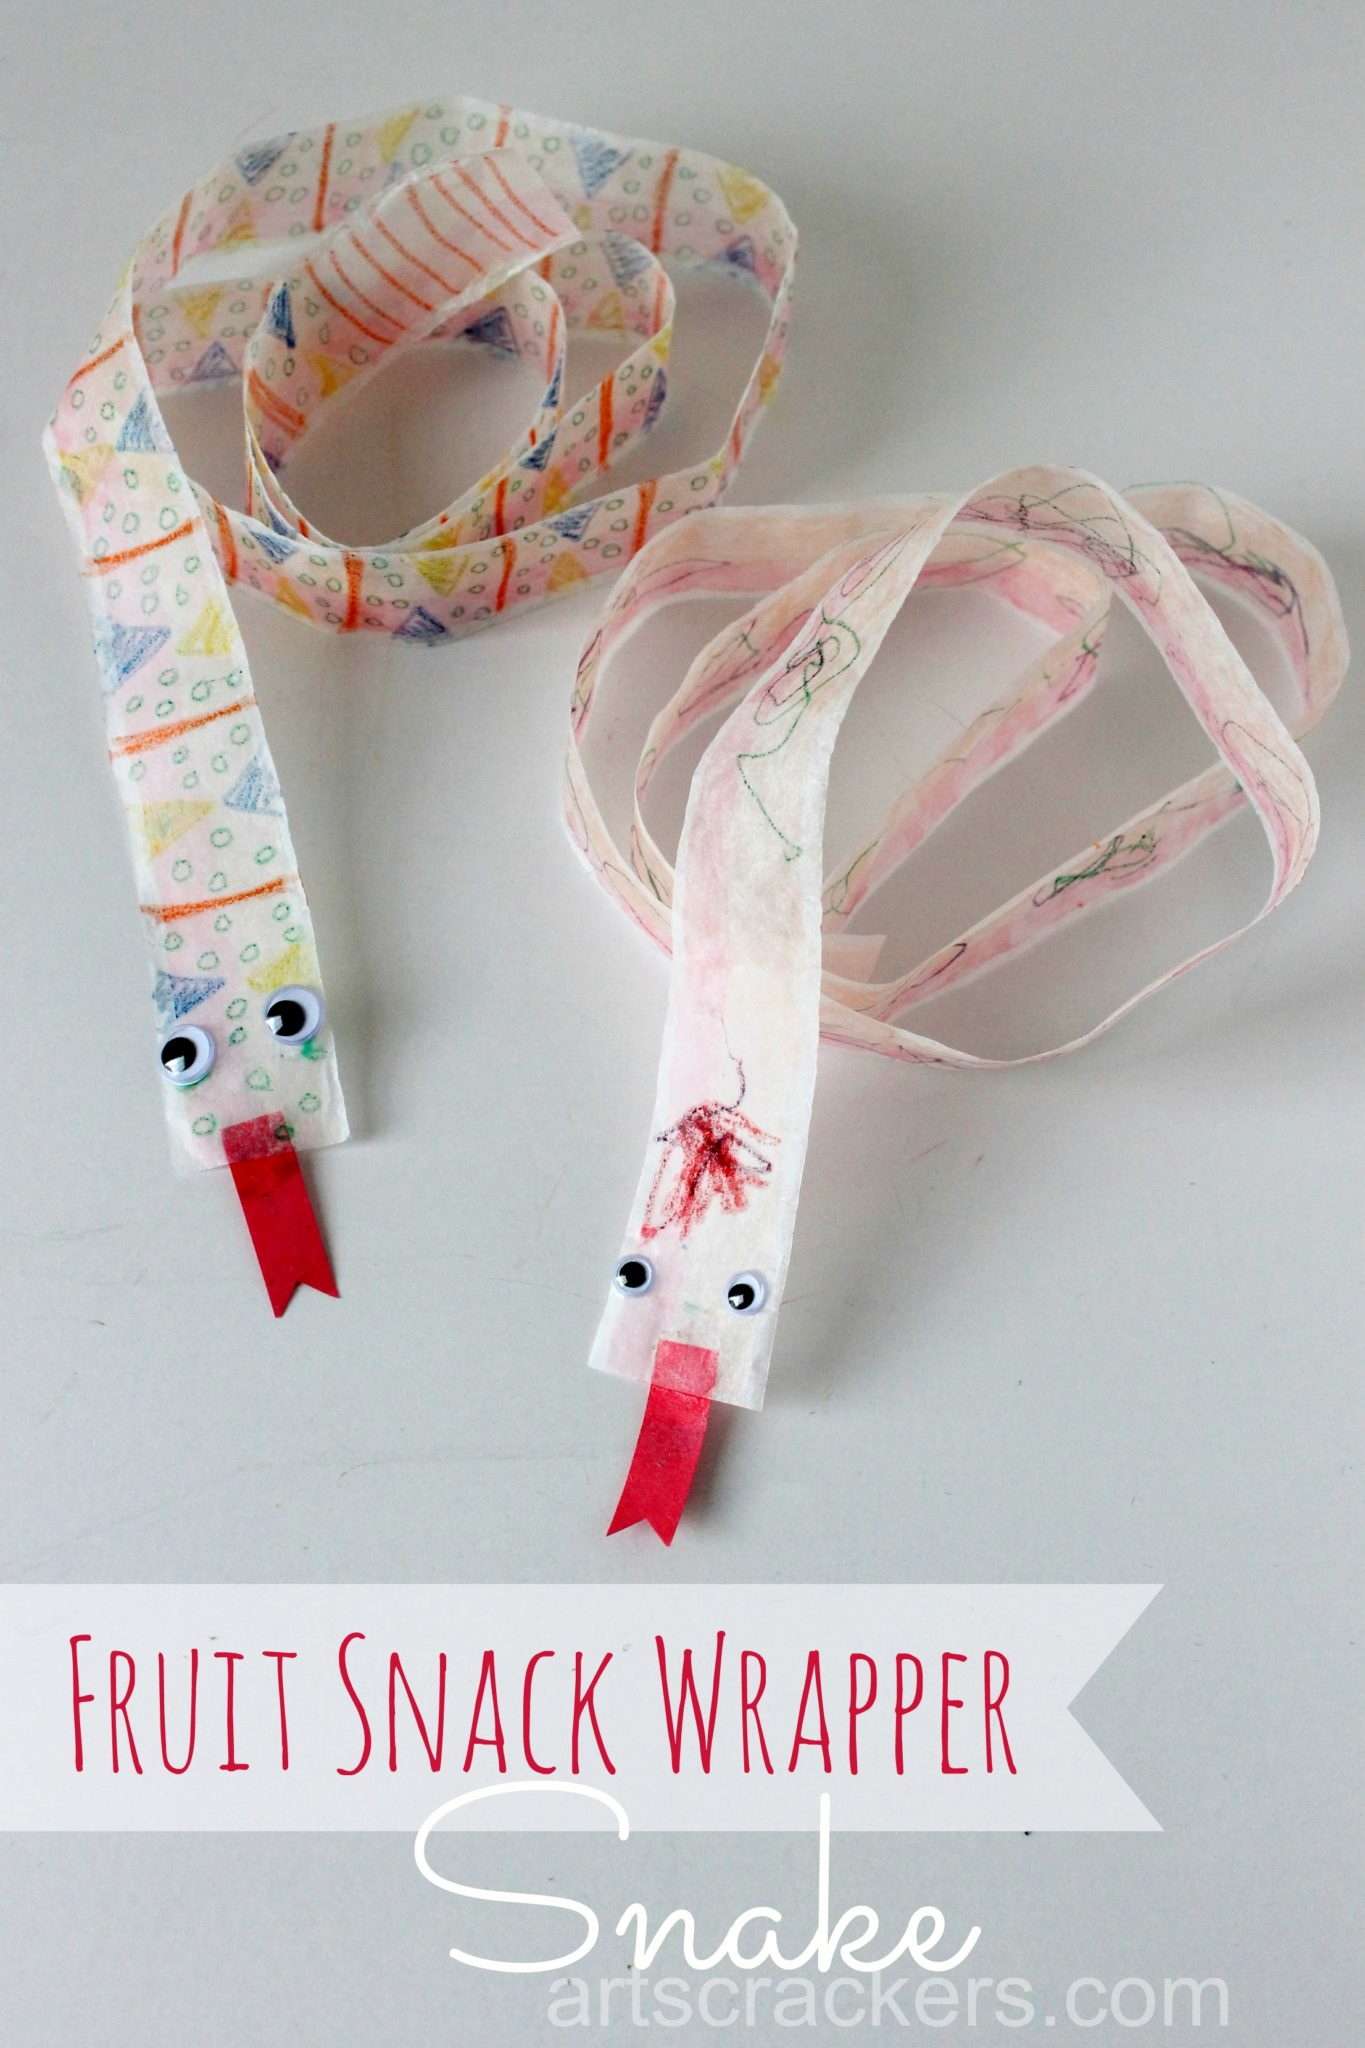 Fruit Snack Wrapper Snake Craft. Click the picture to get the tutorial.